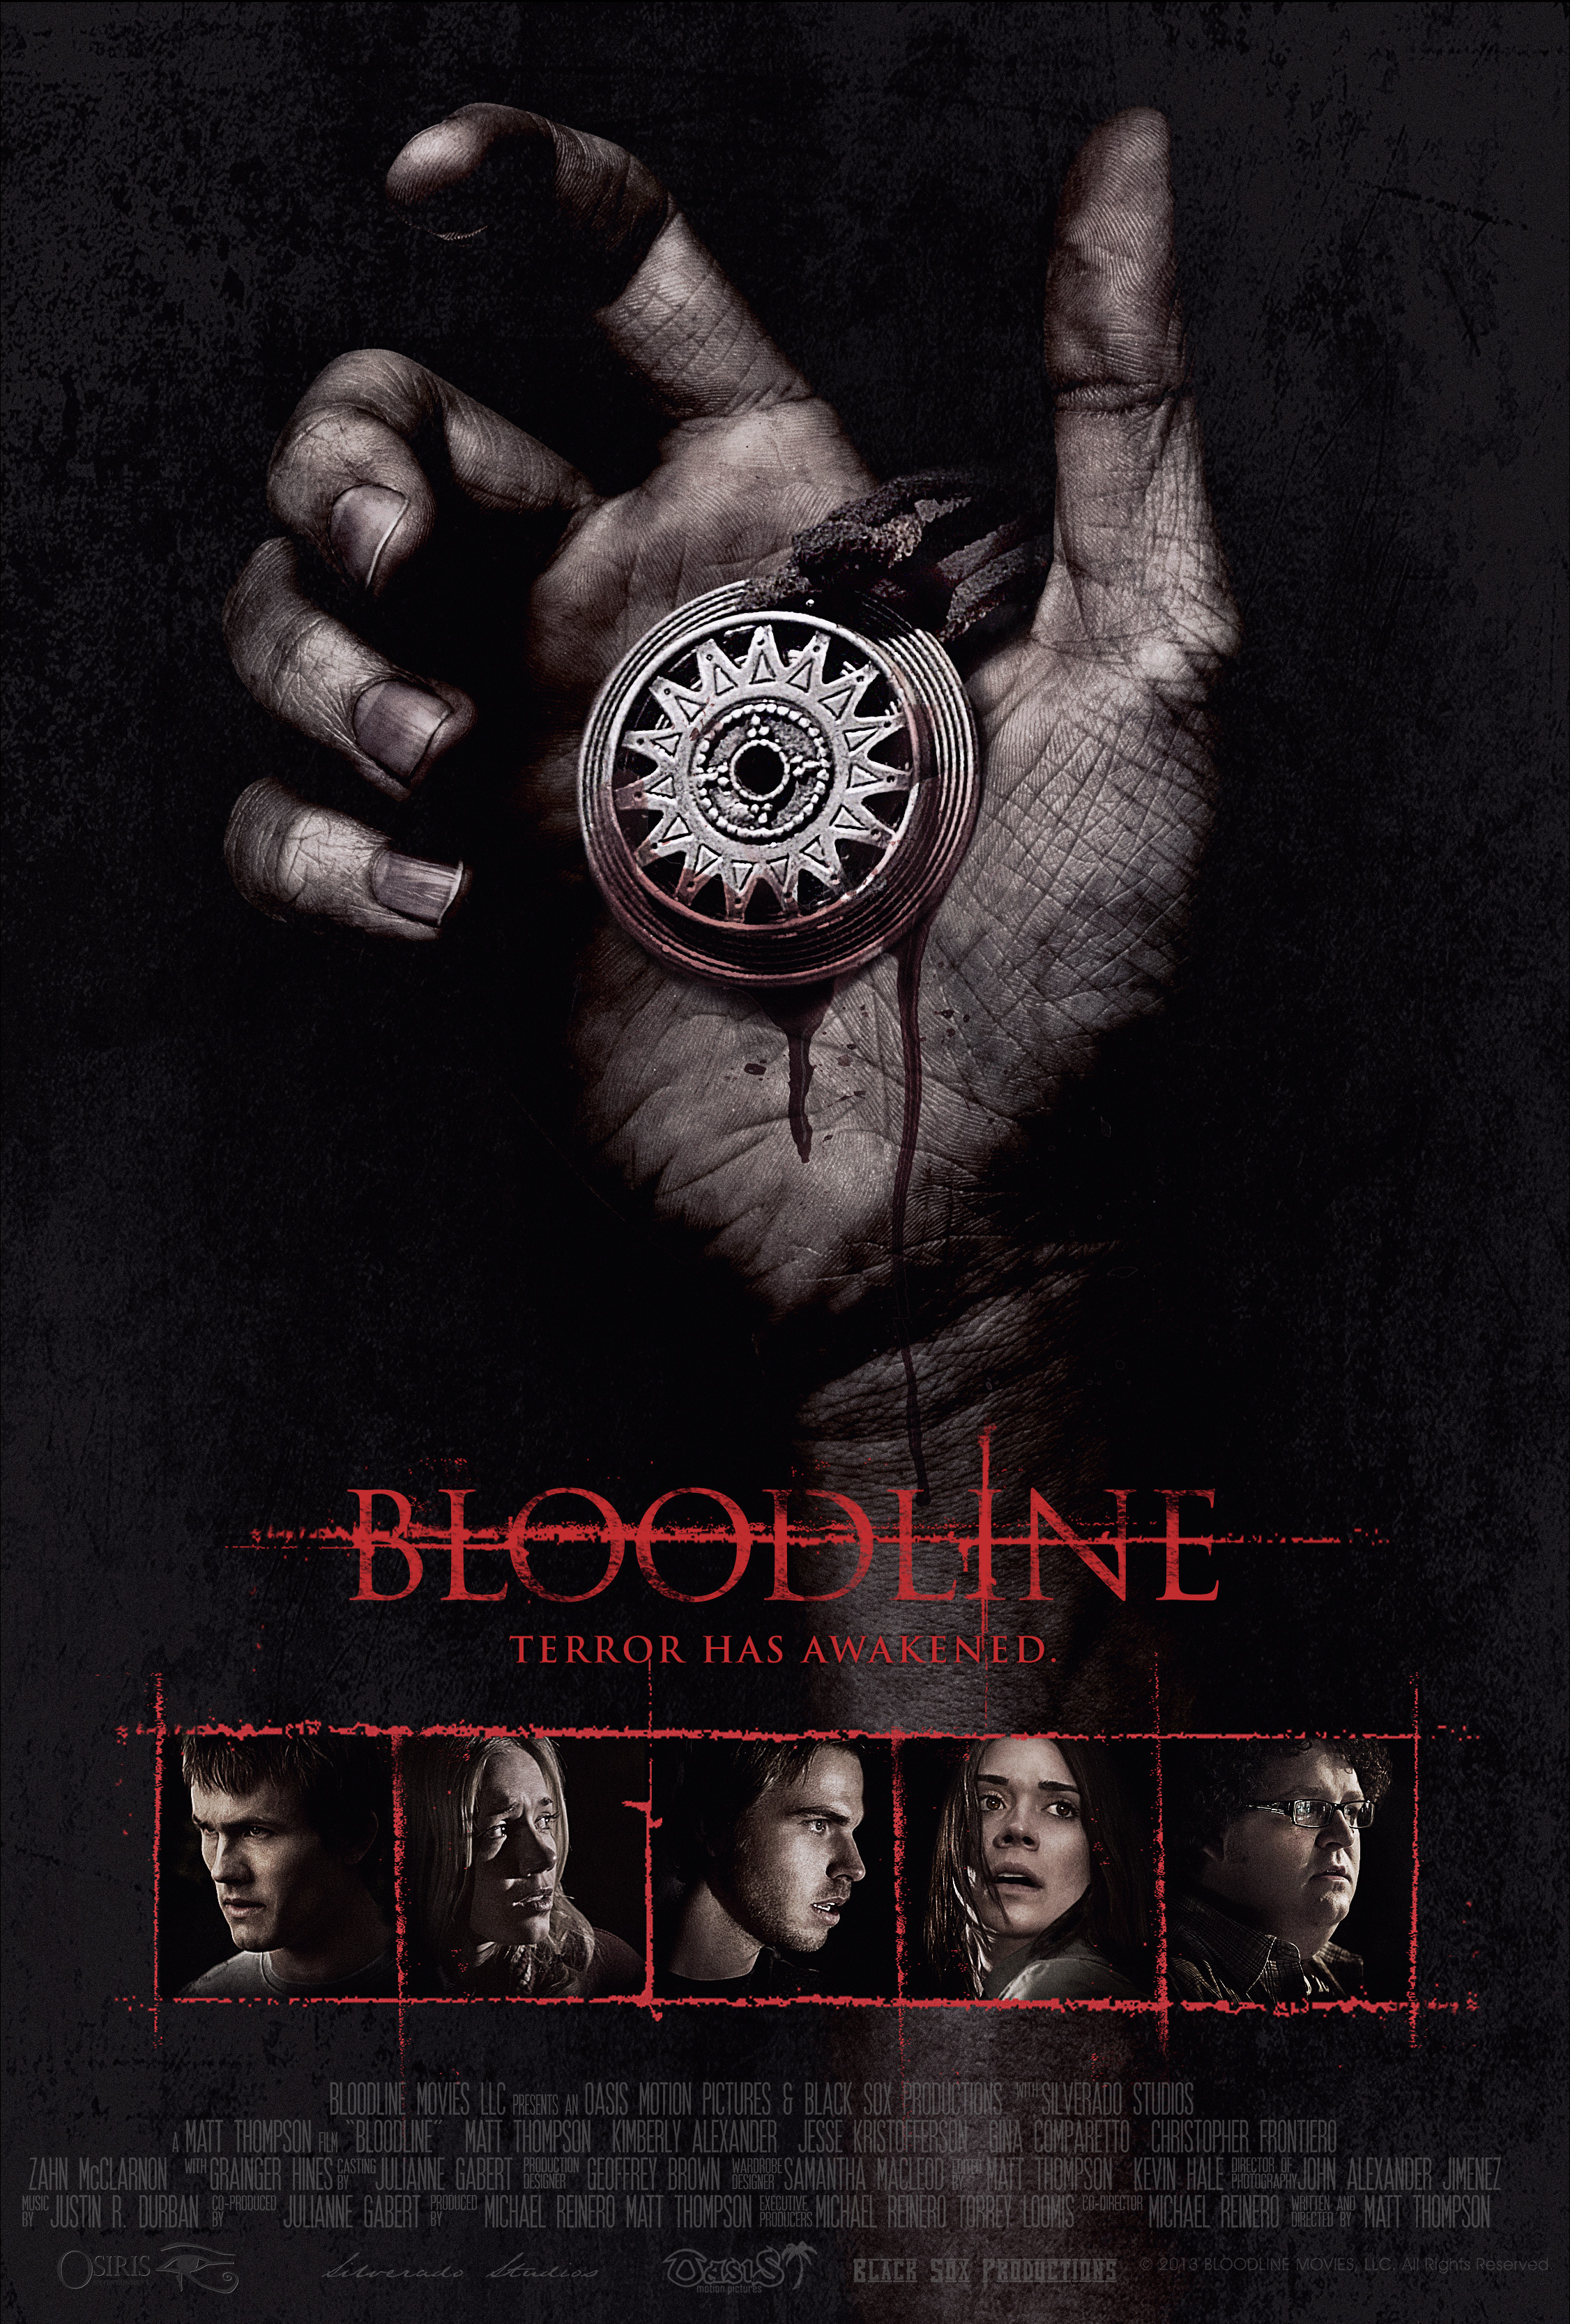 Bloodline KA r1v4 w faces Bloodline Movie Review